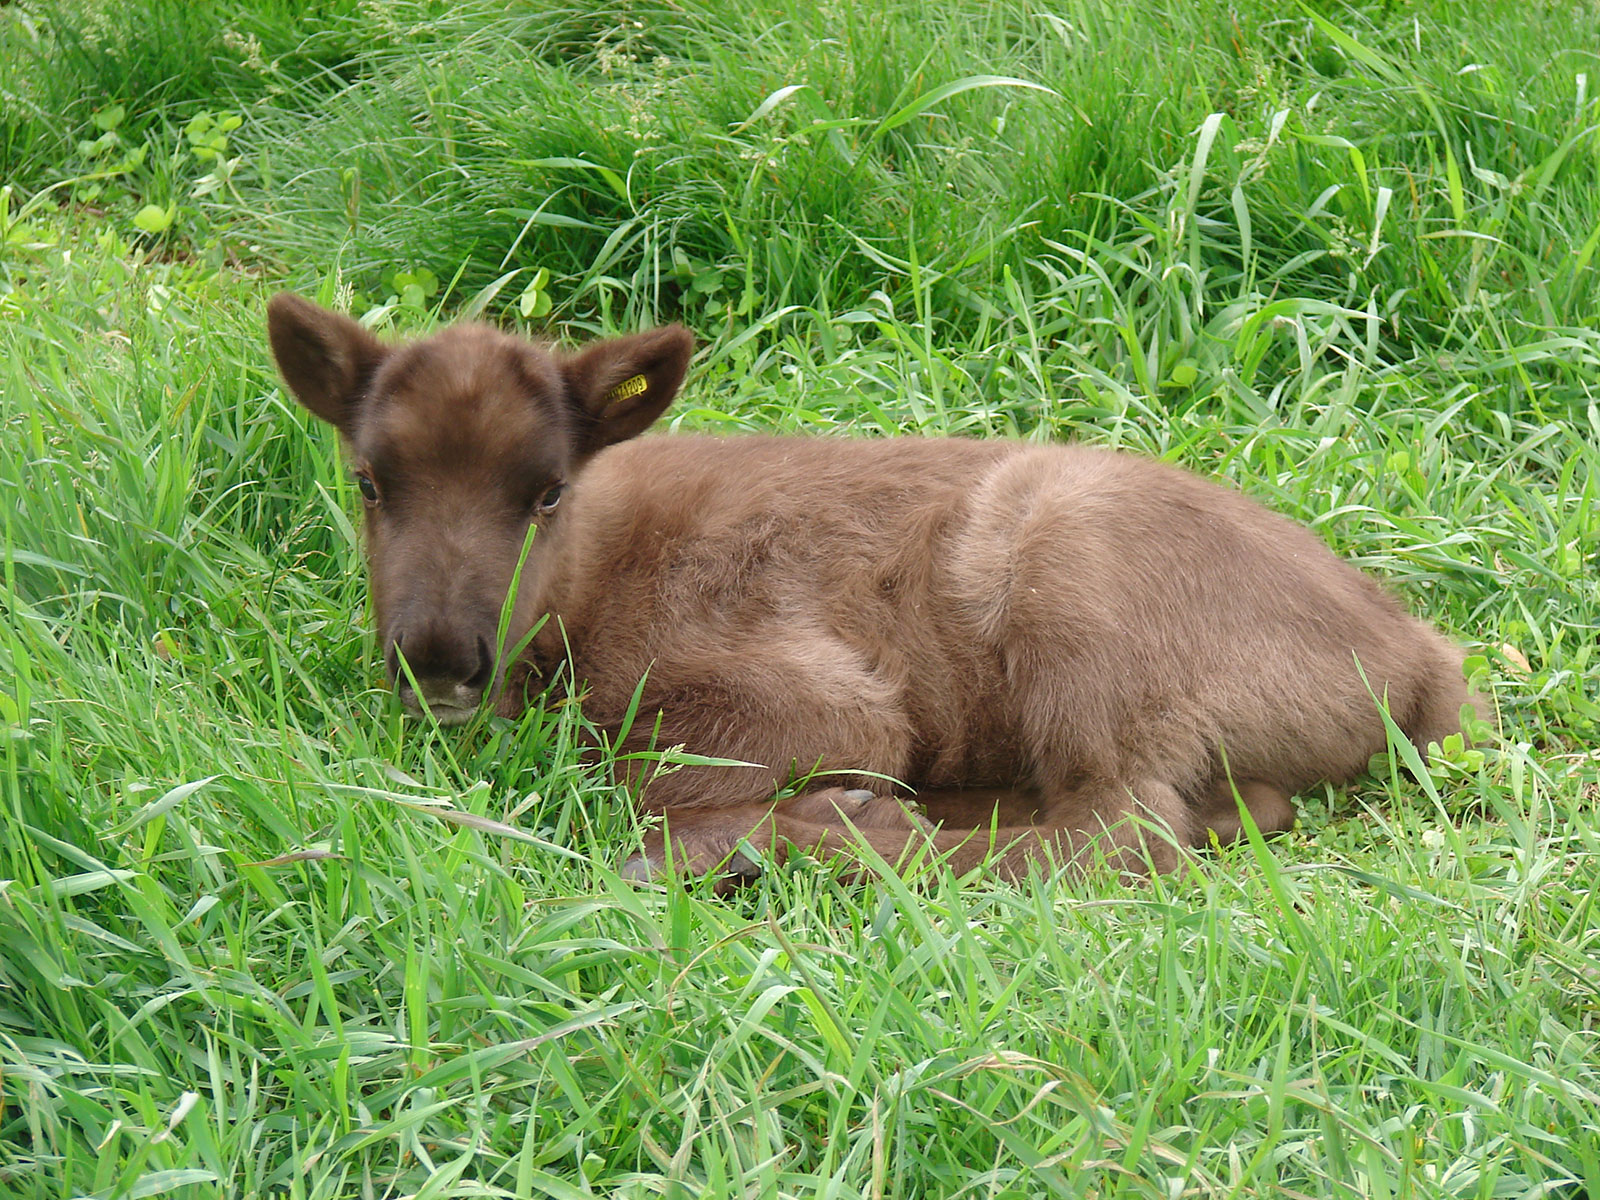 2 week old calf